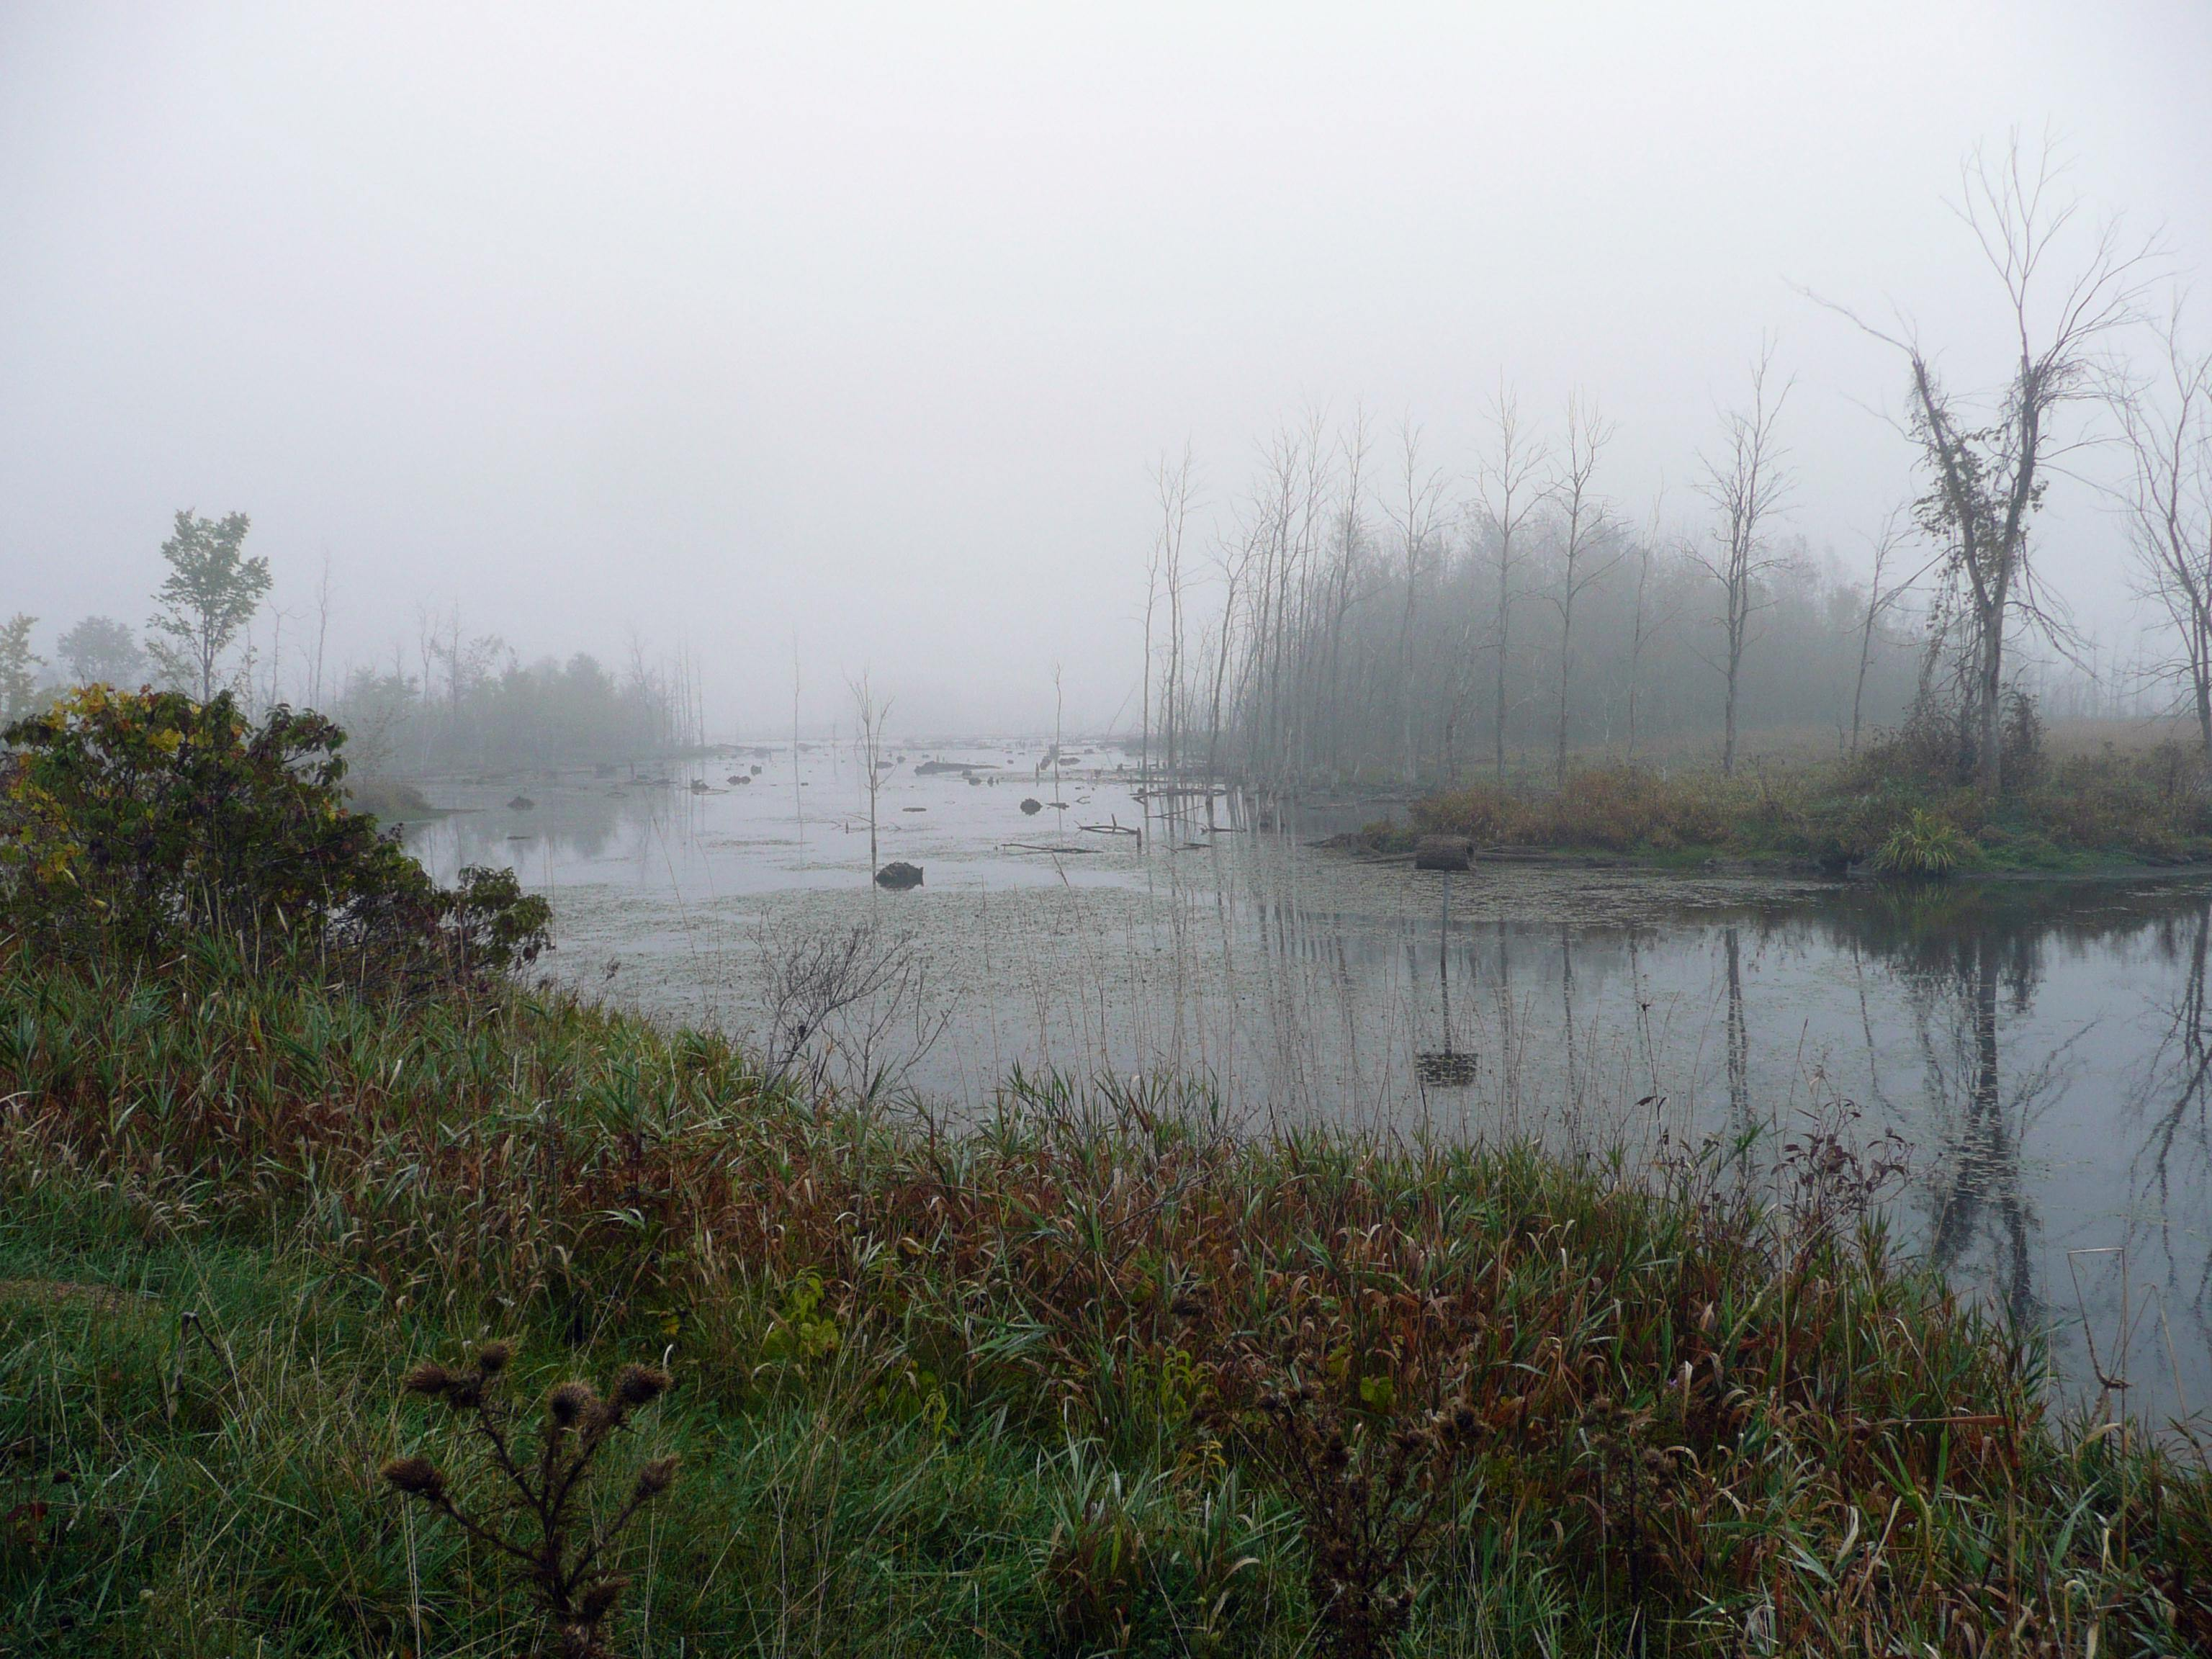 A fog shrouded view of the Squalid Marsh